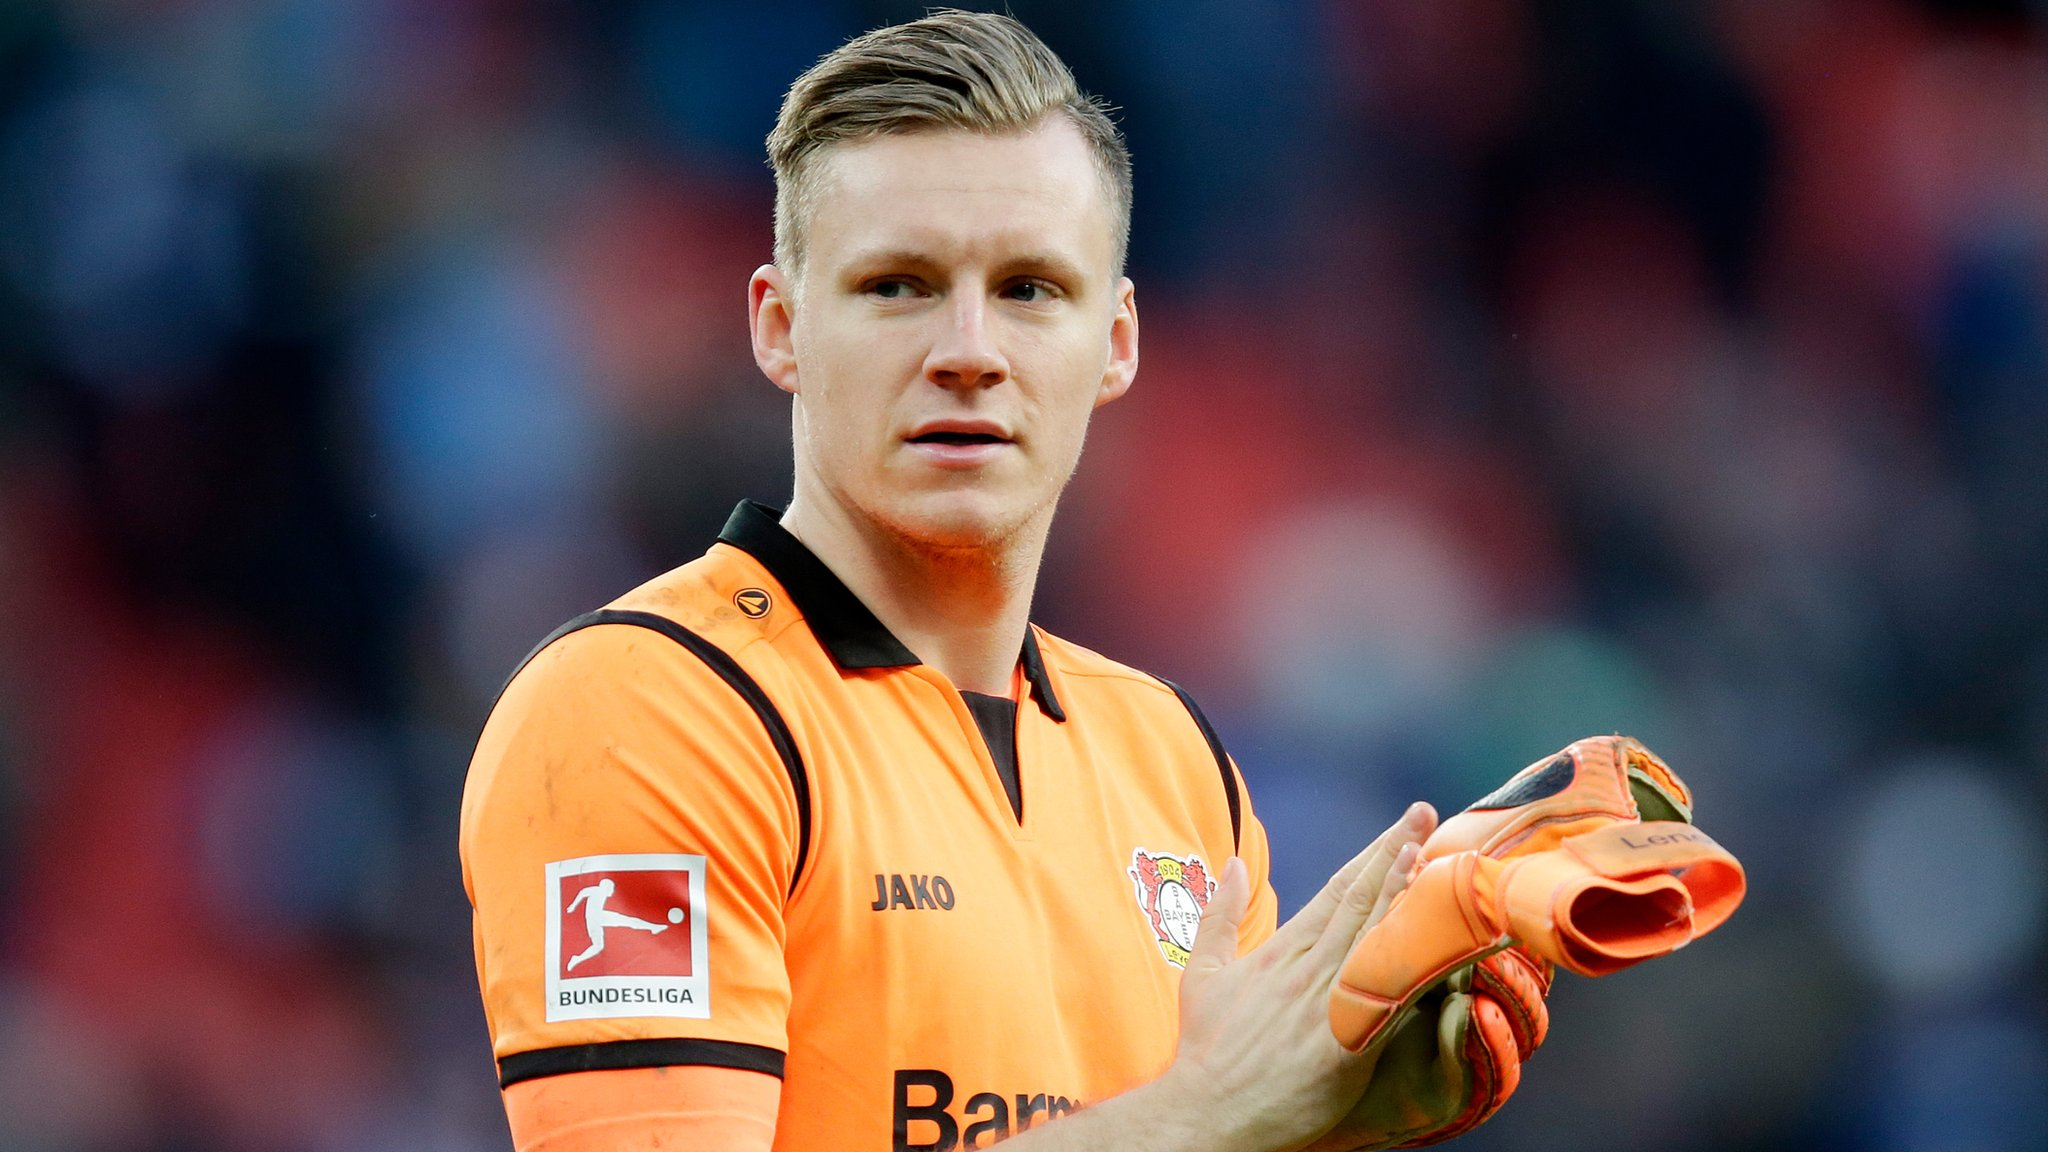 Leverkusen keeper Leno agrees to join Arsenal